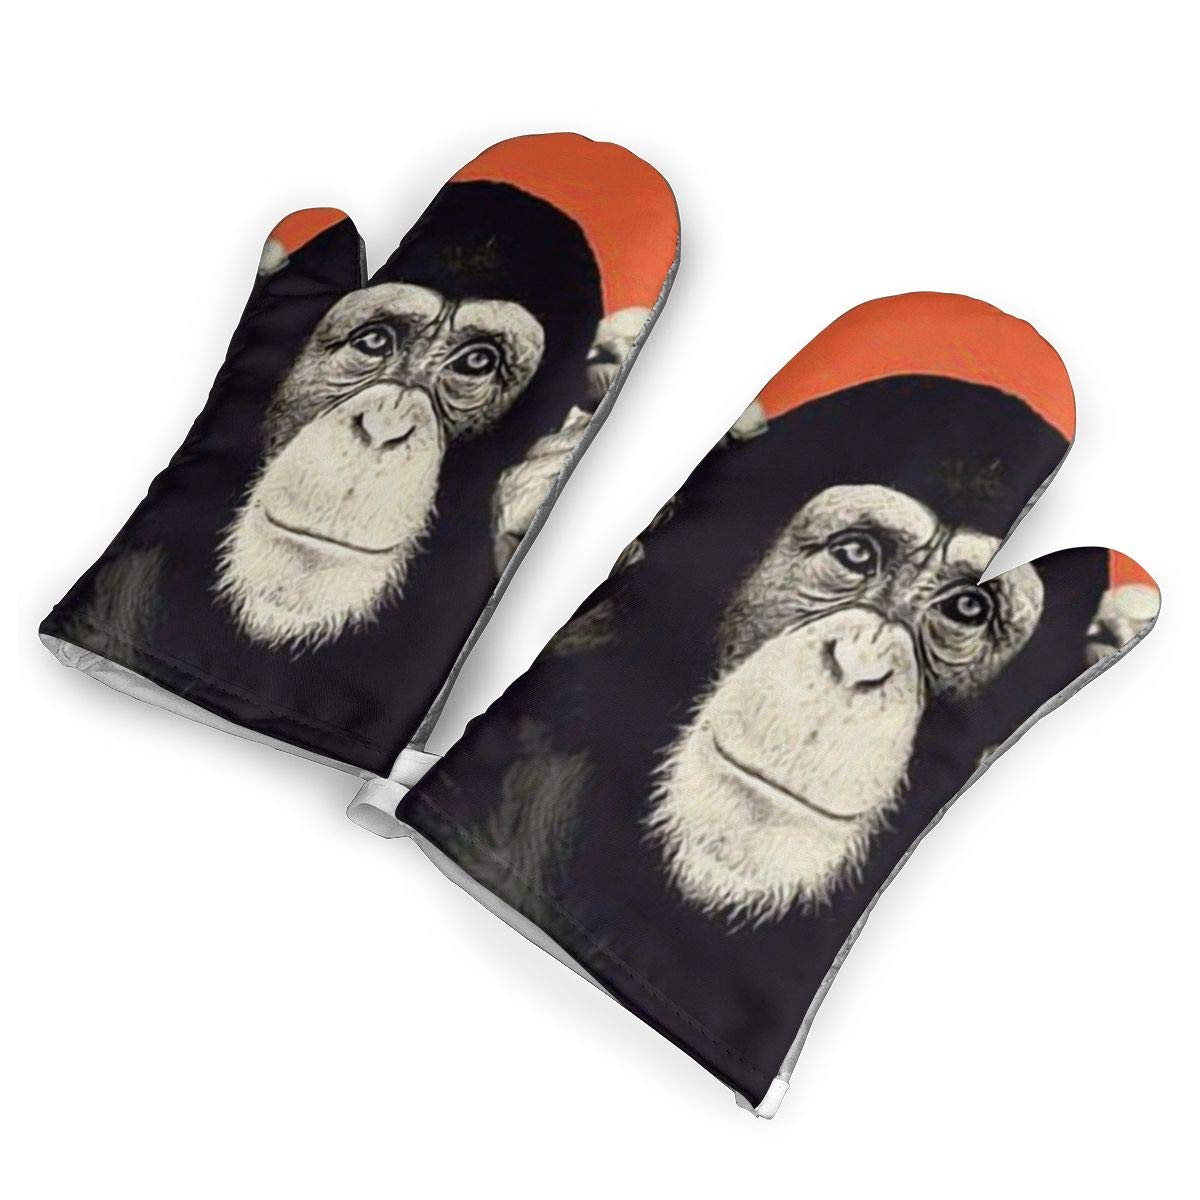 Victoria-Ai Cute Gorilla Face Orange Oven Mitts Premium Heat Resistant Kitchen Gloves Non-Slip Easy to Use Baking Mittens for BBQ/Cooking/Grilling